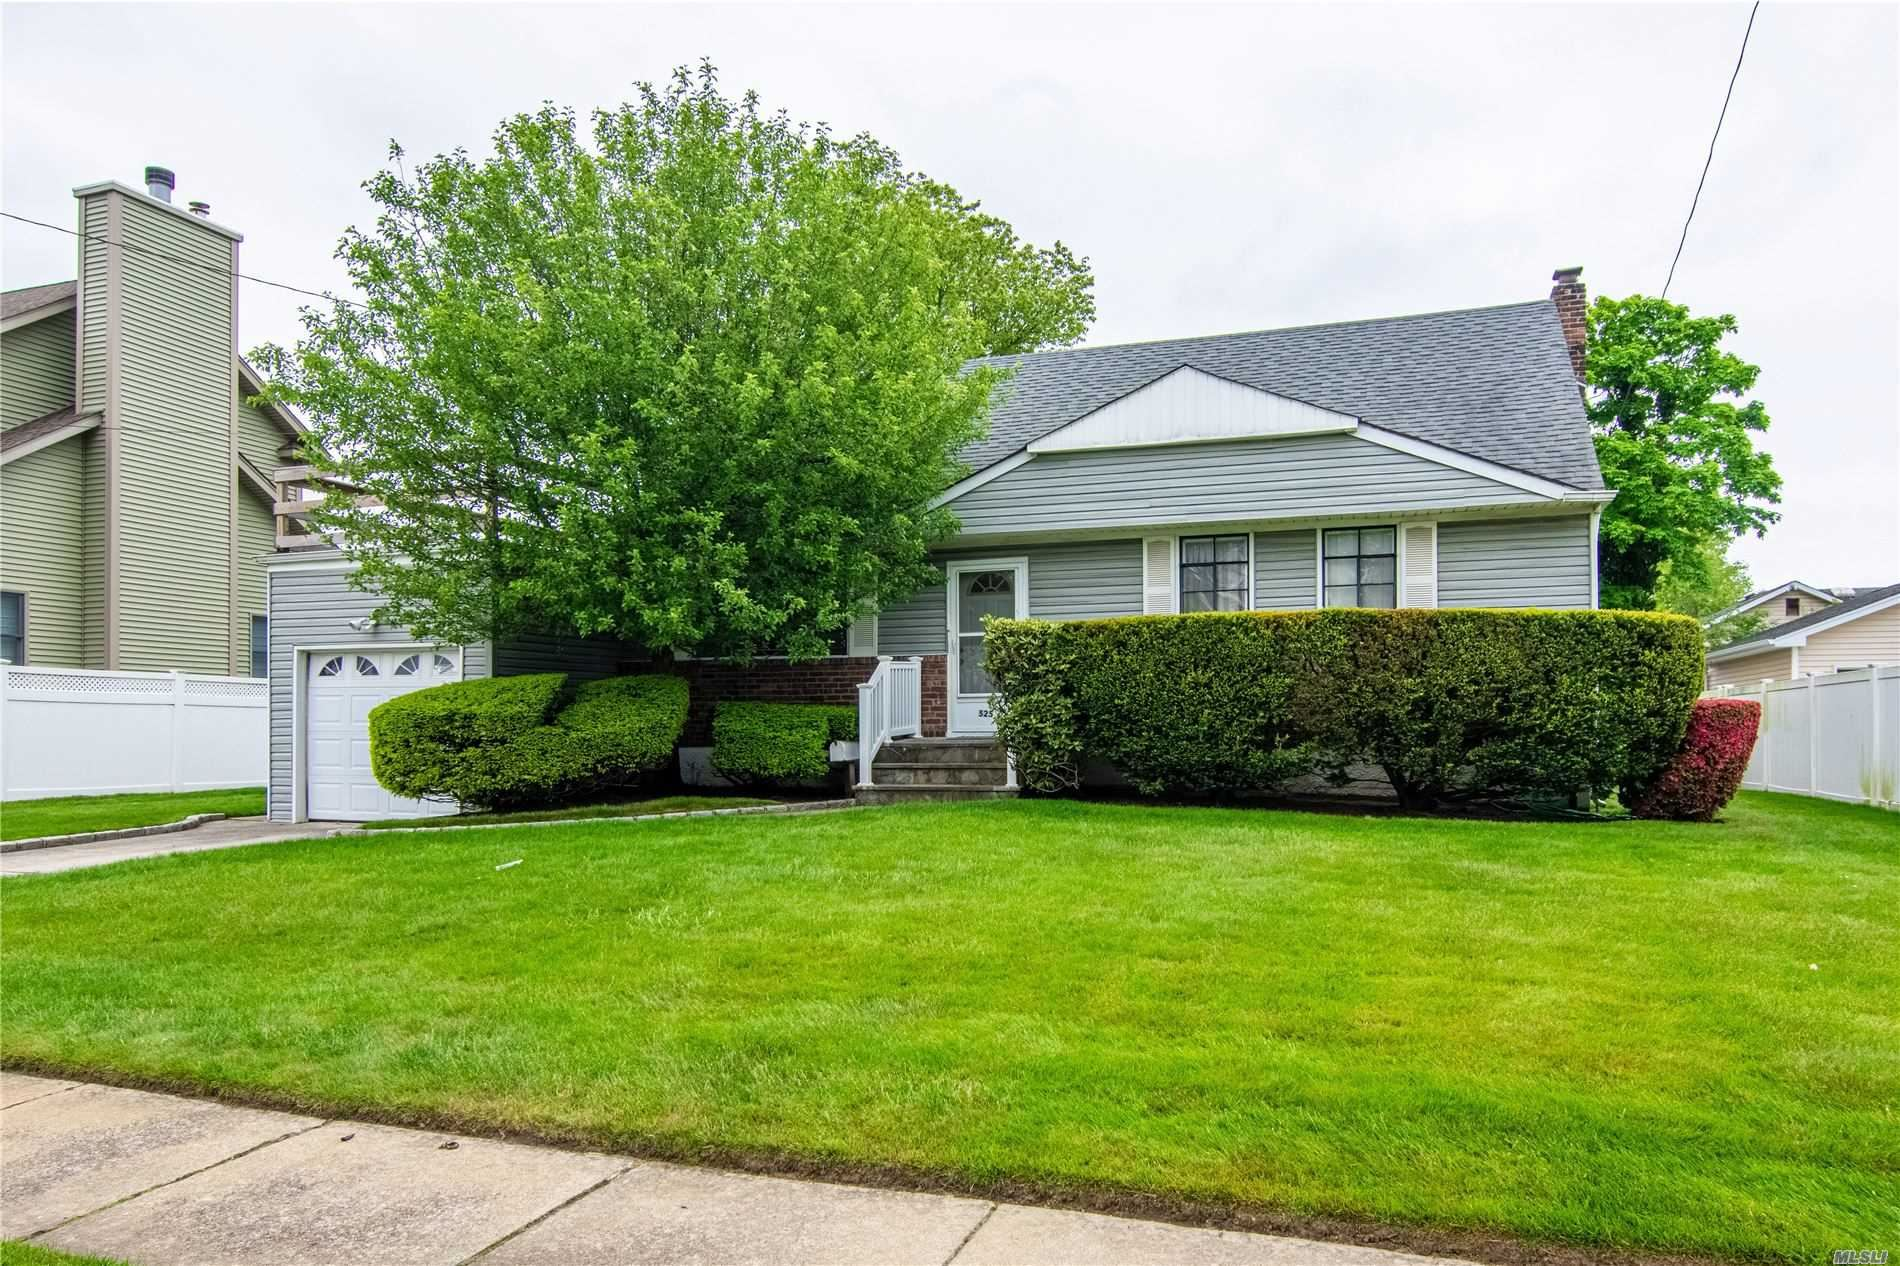 525 S Chicot Avenue, West Islip, NY 11795 - MLS#: 3217163